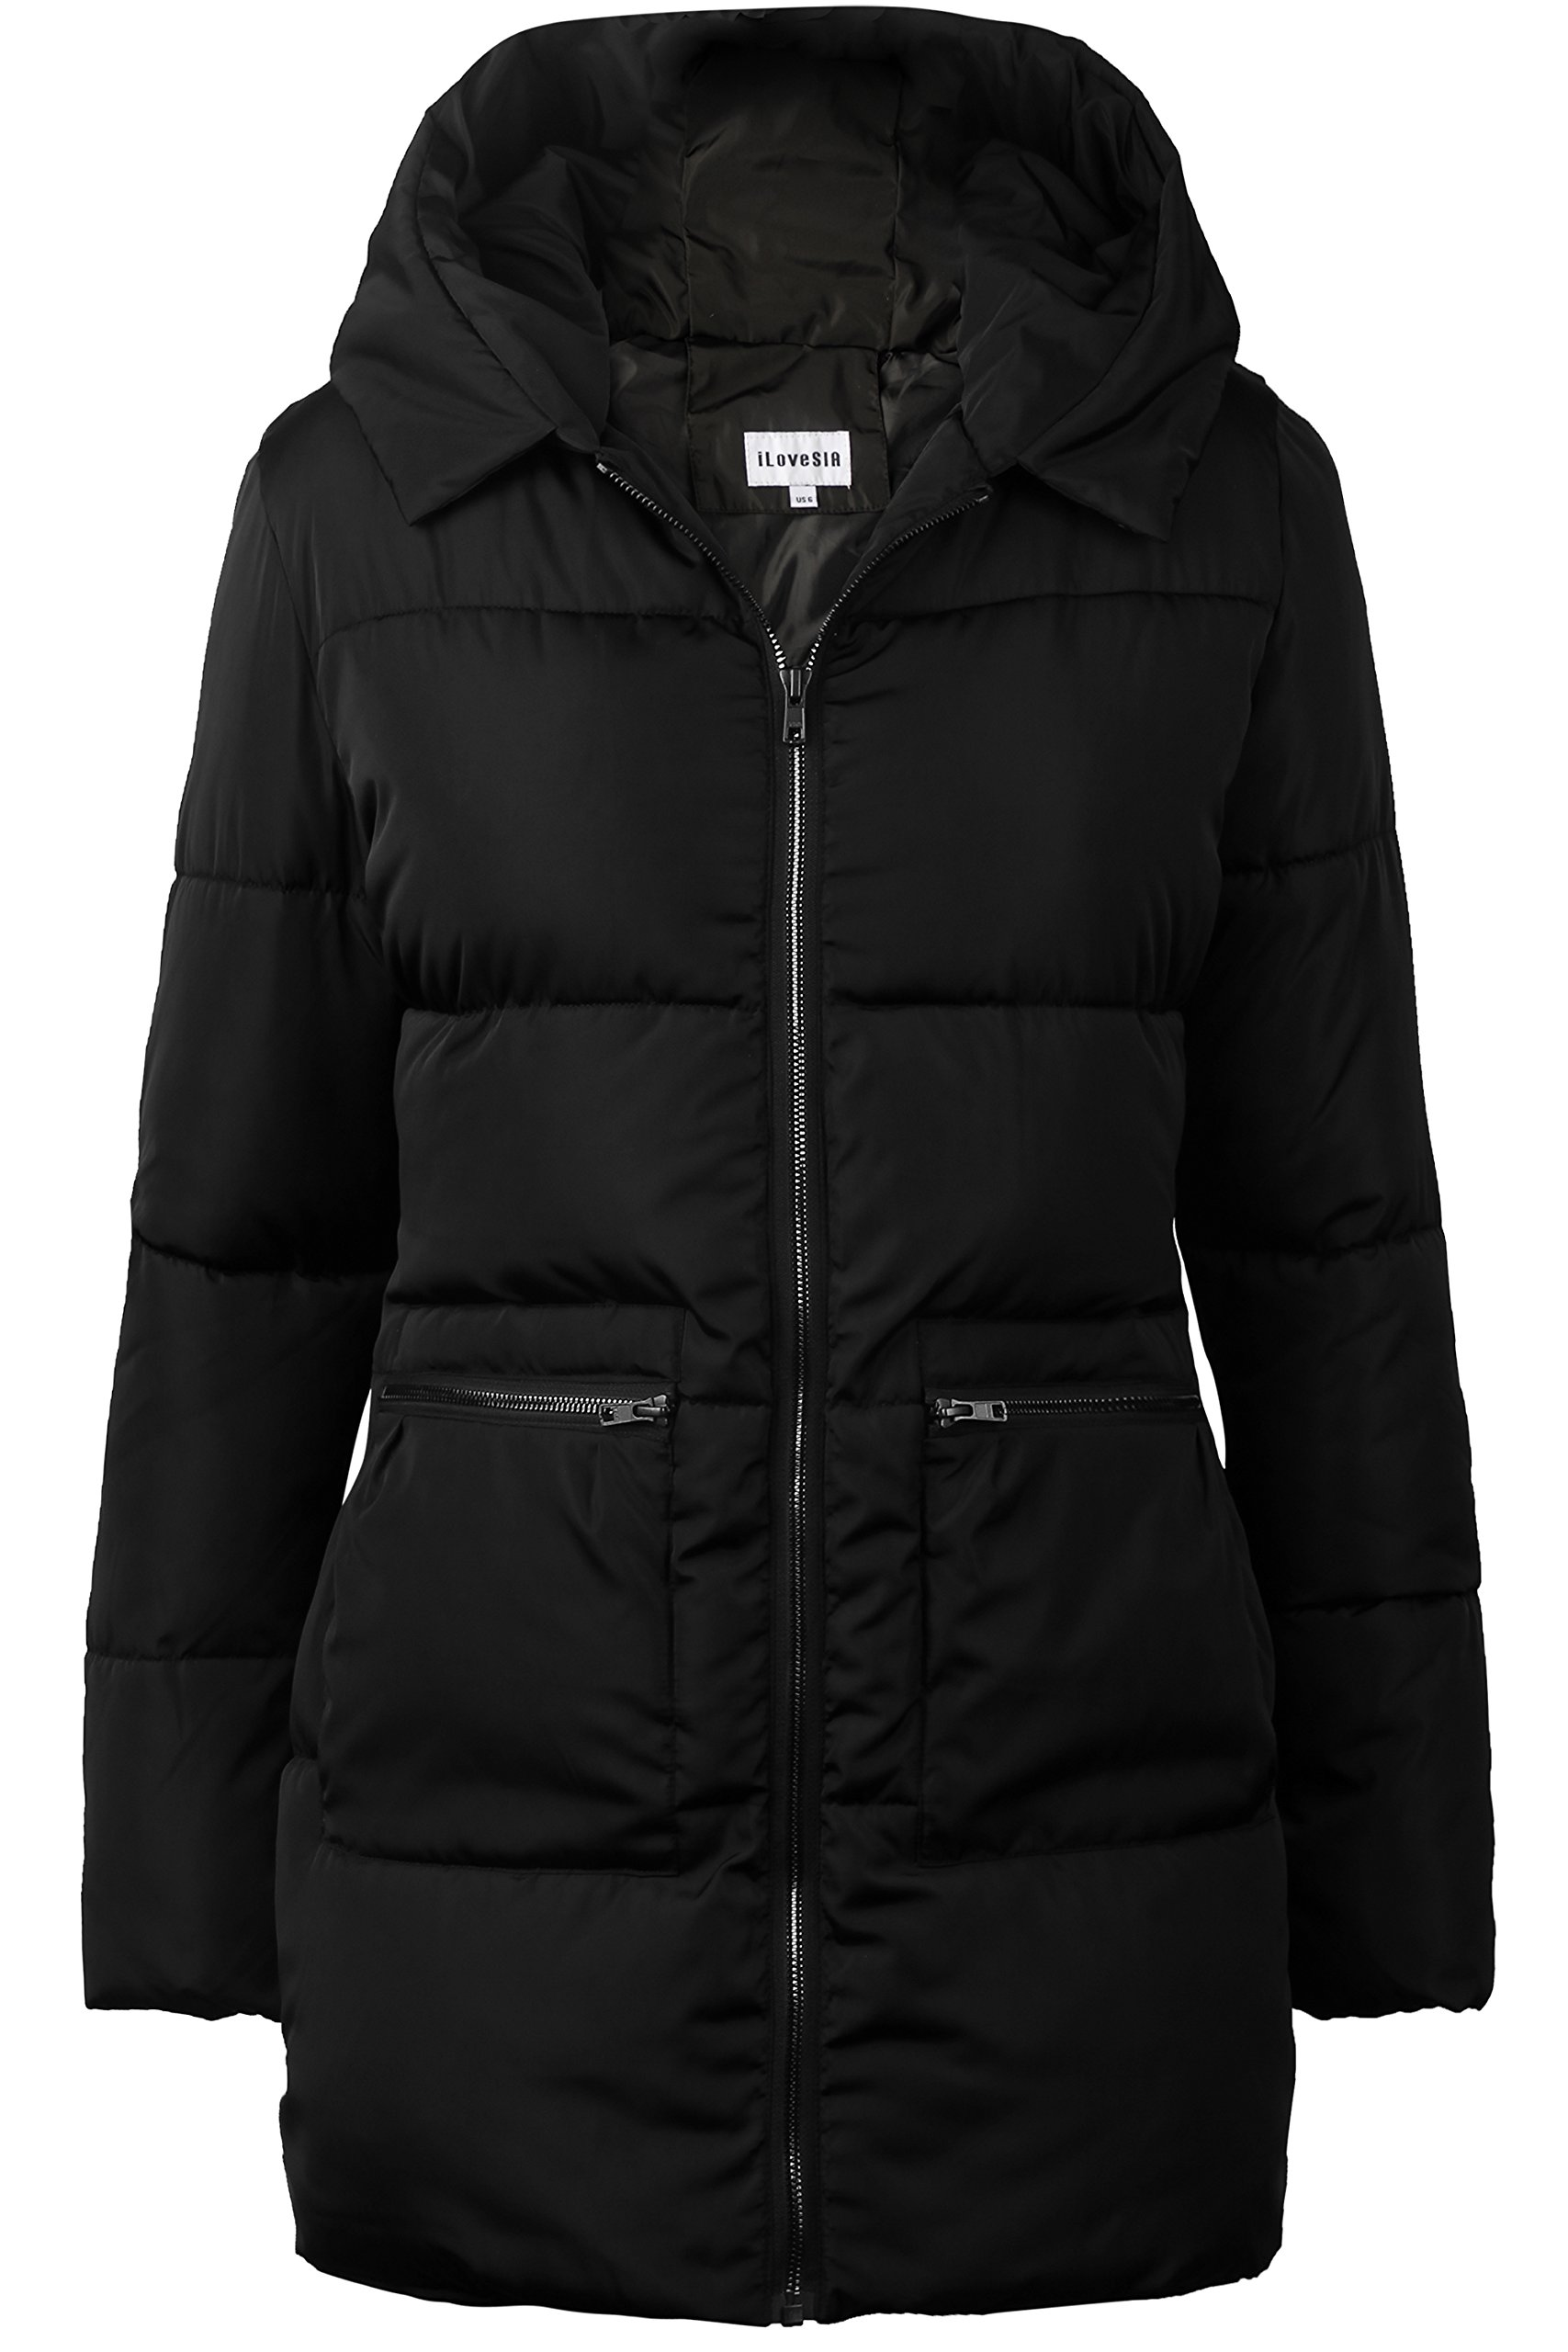 iLoveSIA Women's Down Alternative Quilted Padded Thicken Puffer Coat with Hood Black Size 08